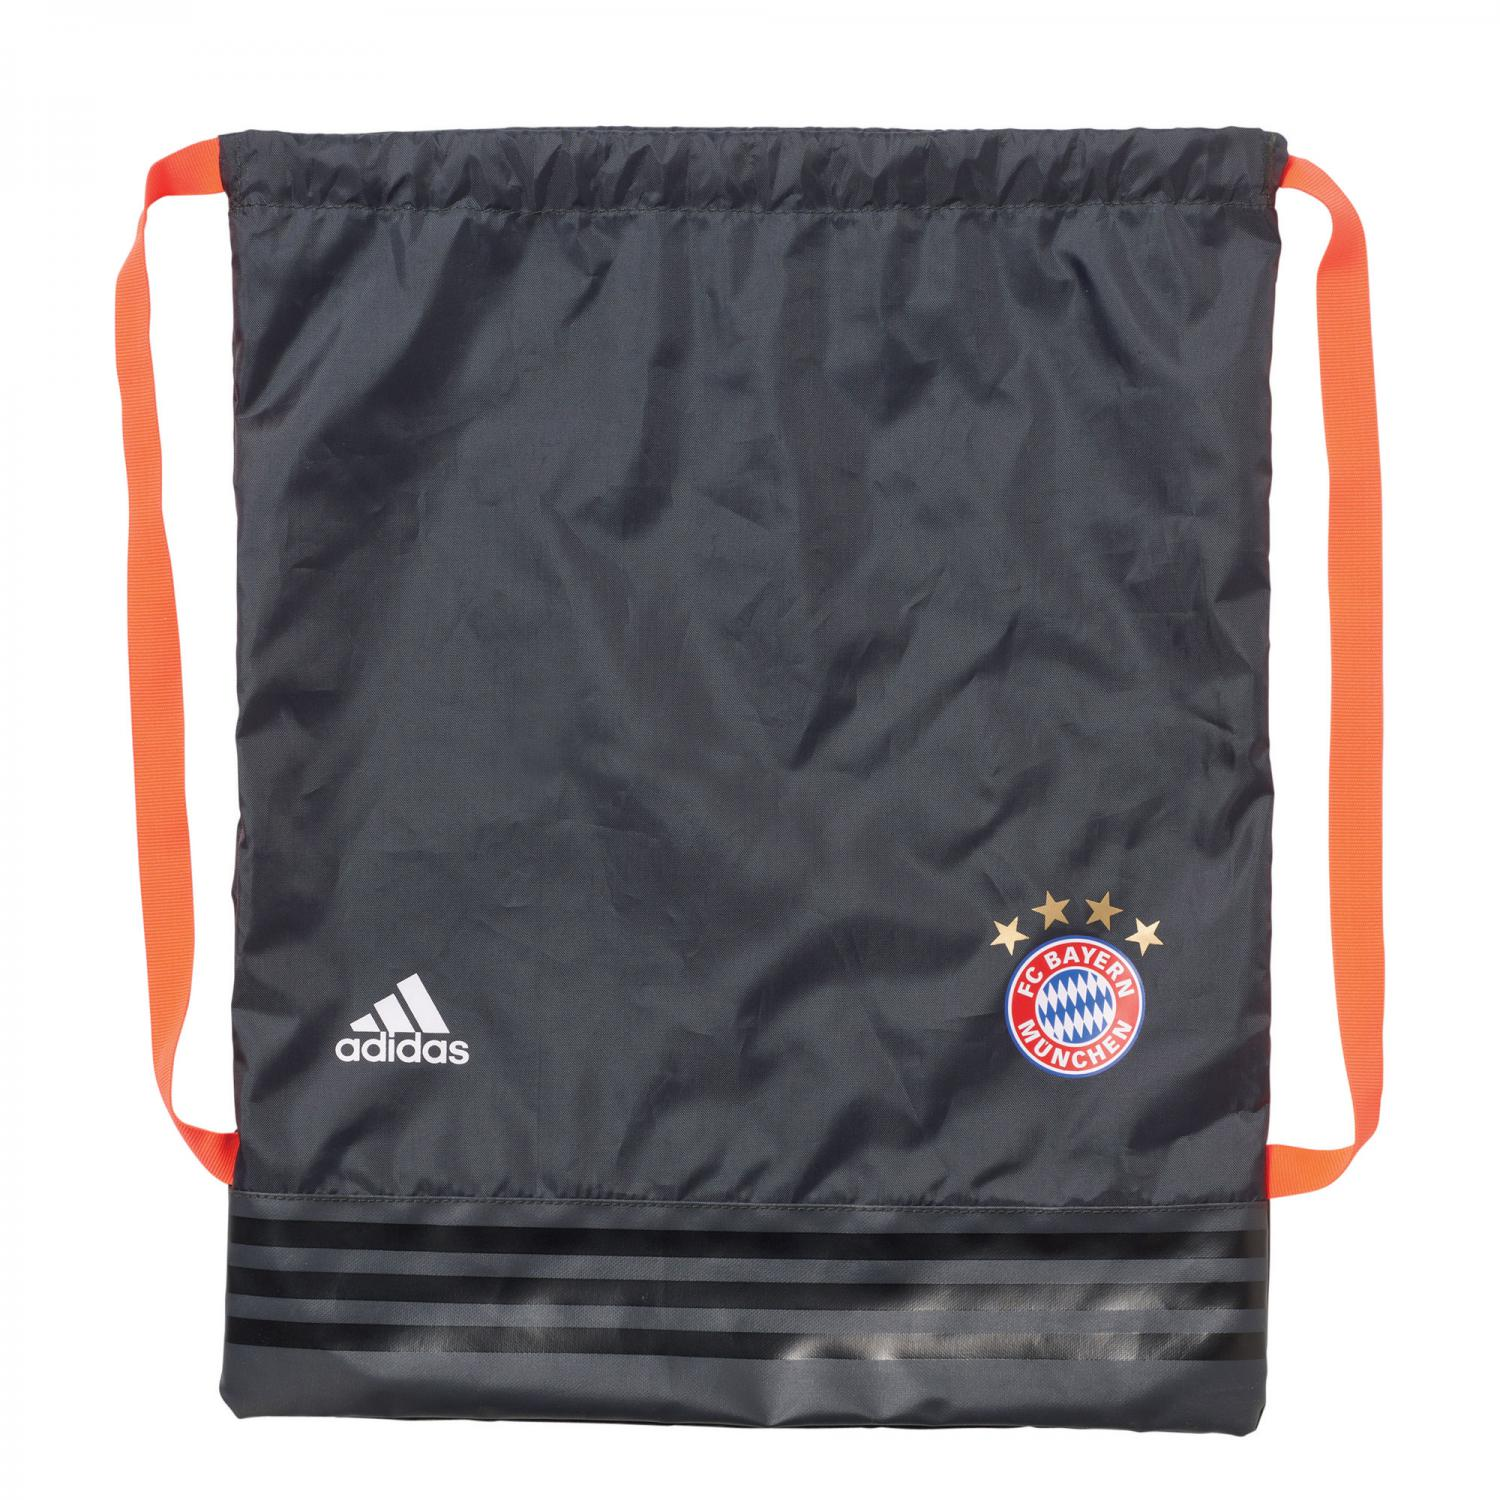 20162017 Bayern Munich Adidas Gym Bag (Solid Grey)